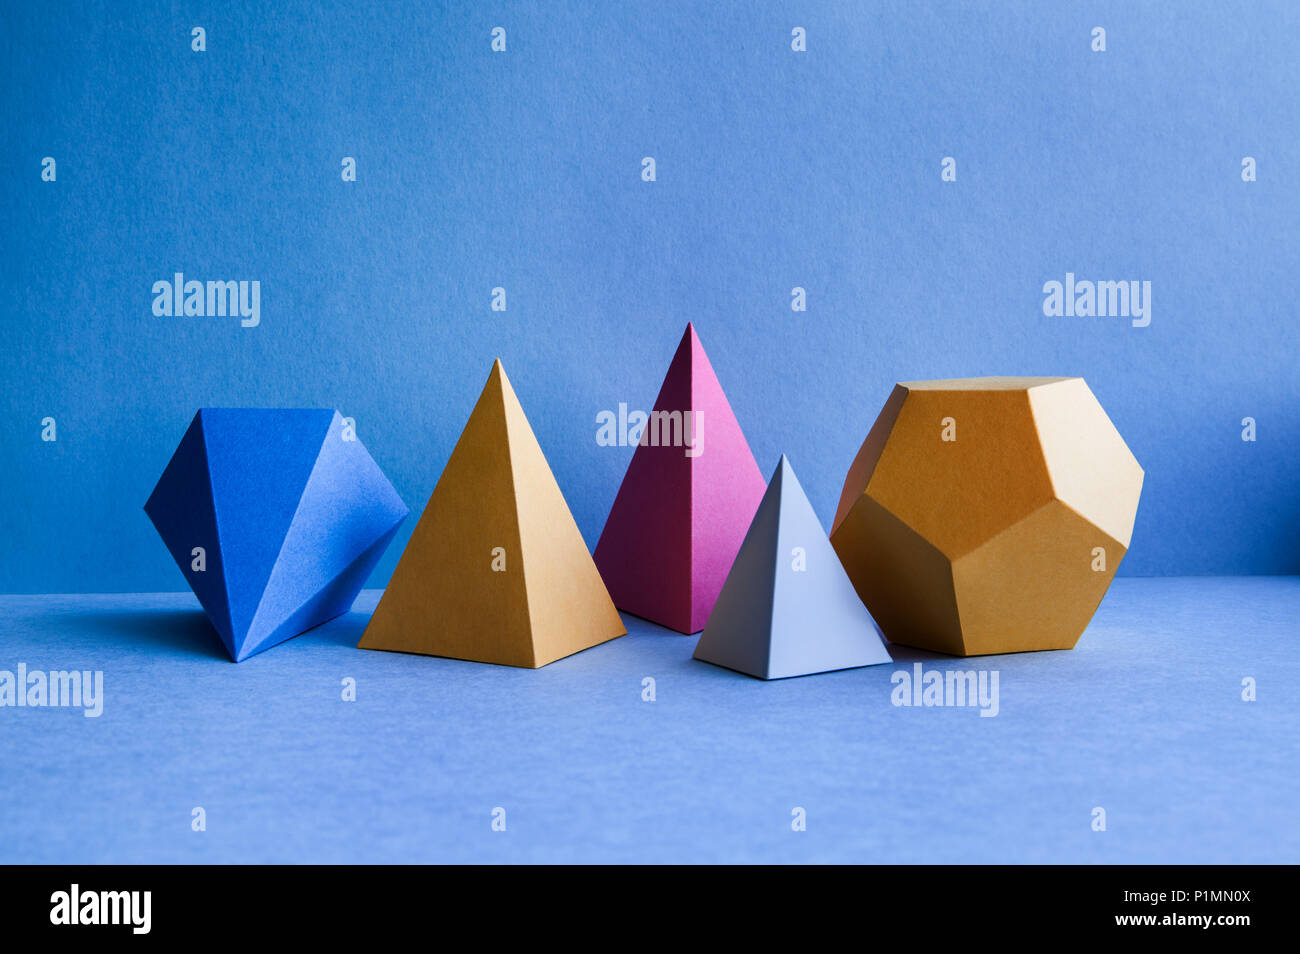 Abstract geometric figures. Three-dimensional dodecahedron pyramid tetrahedron cube rectangular objects on blue background. Bright platonic solids still life background. - Stock Image